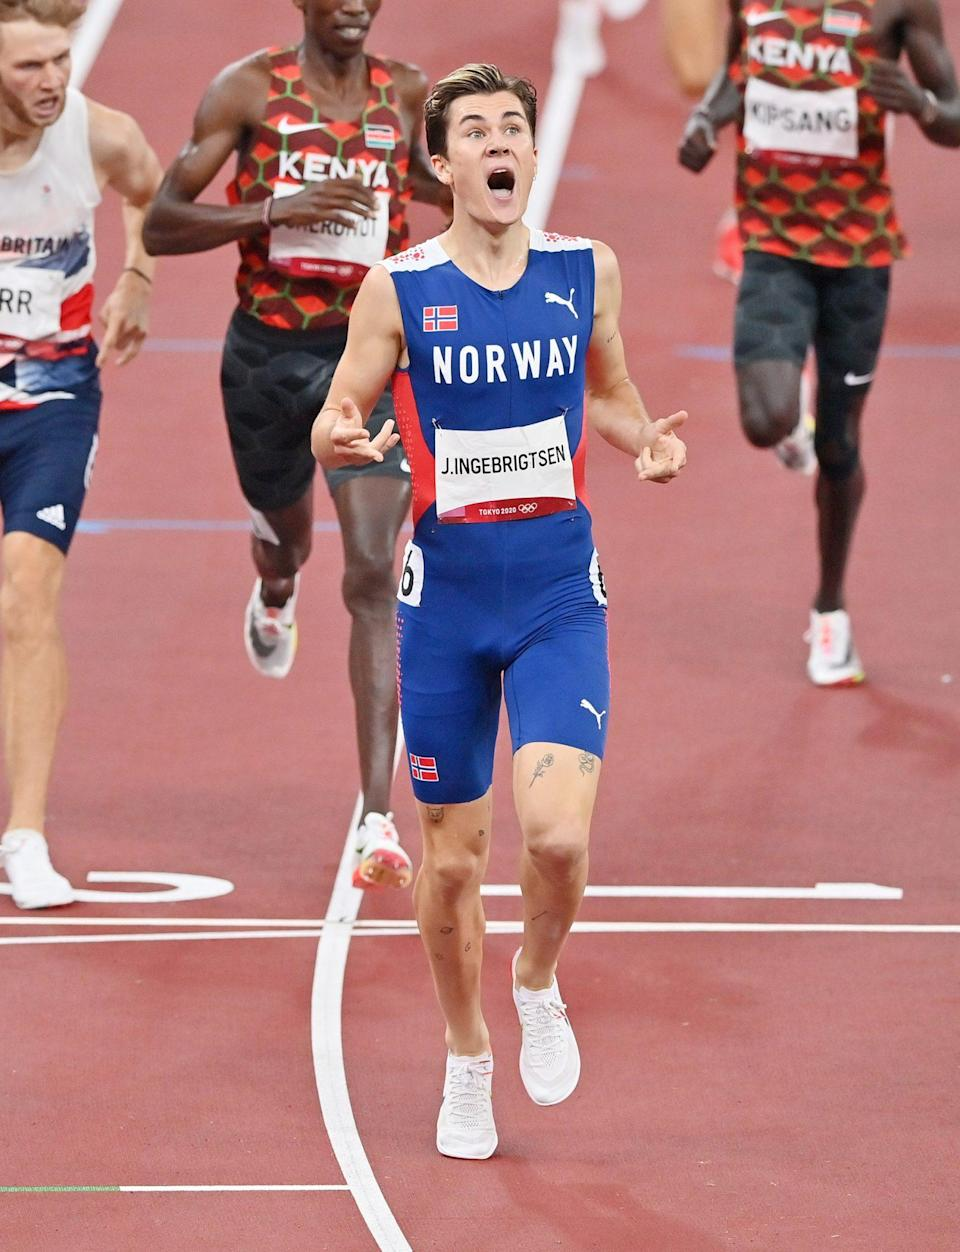 <p>Jakob Ingebrigtsen of Norway is stunned after winning the gold medal in the Men's 1500m Final. </p>